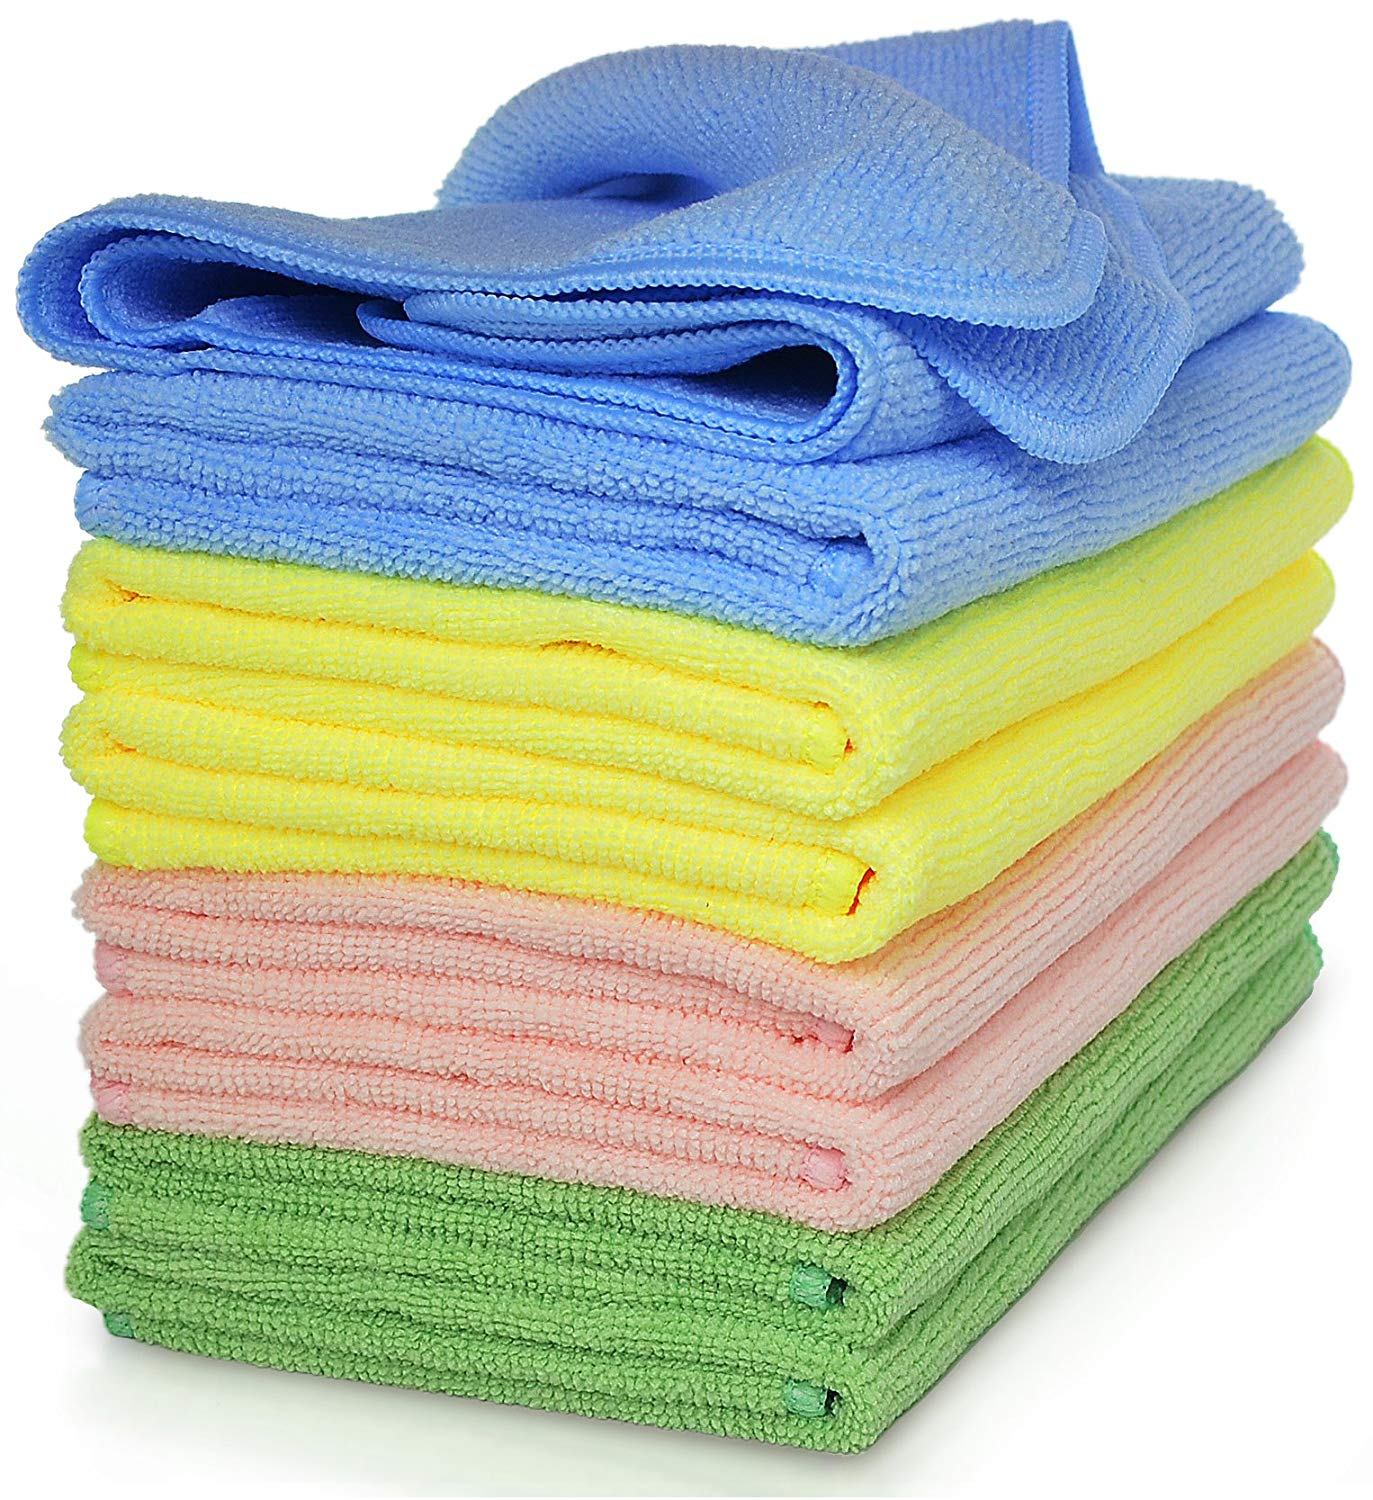 42 Brilliant Cleaning Microfiber Cloth Uses VibraWipe Microfiber Cleaning Cloths #Microfiber #Cleaning #BudgetFriendly #Affordable #HouseCleaning #SaveMoney #SaveTime